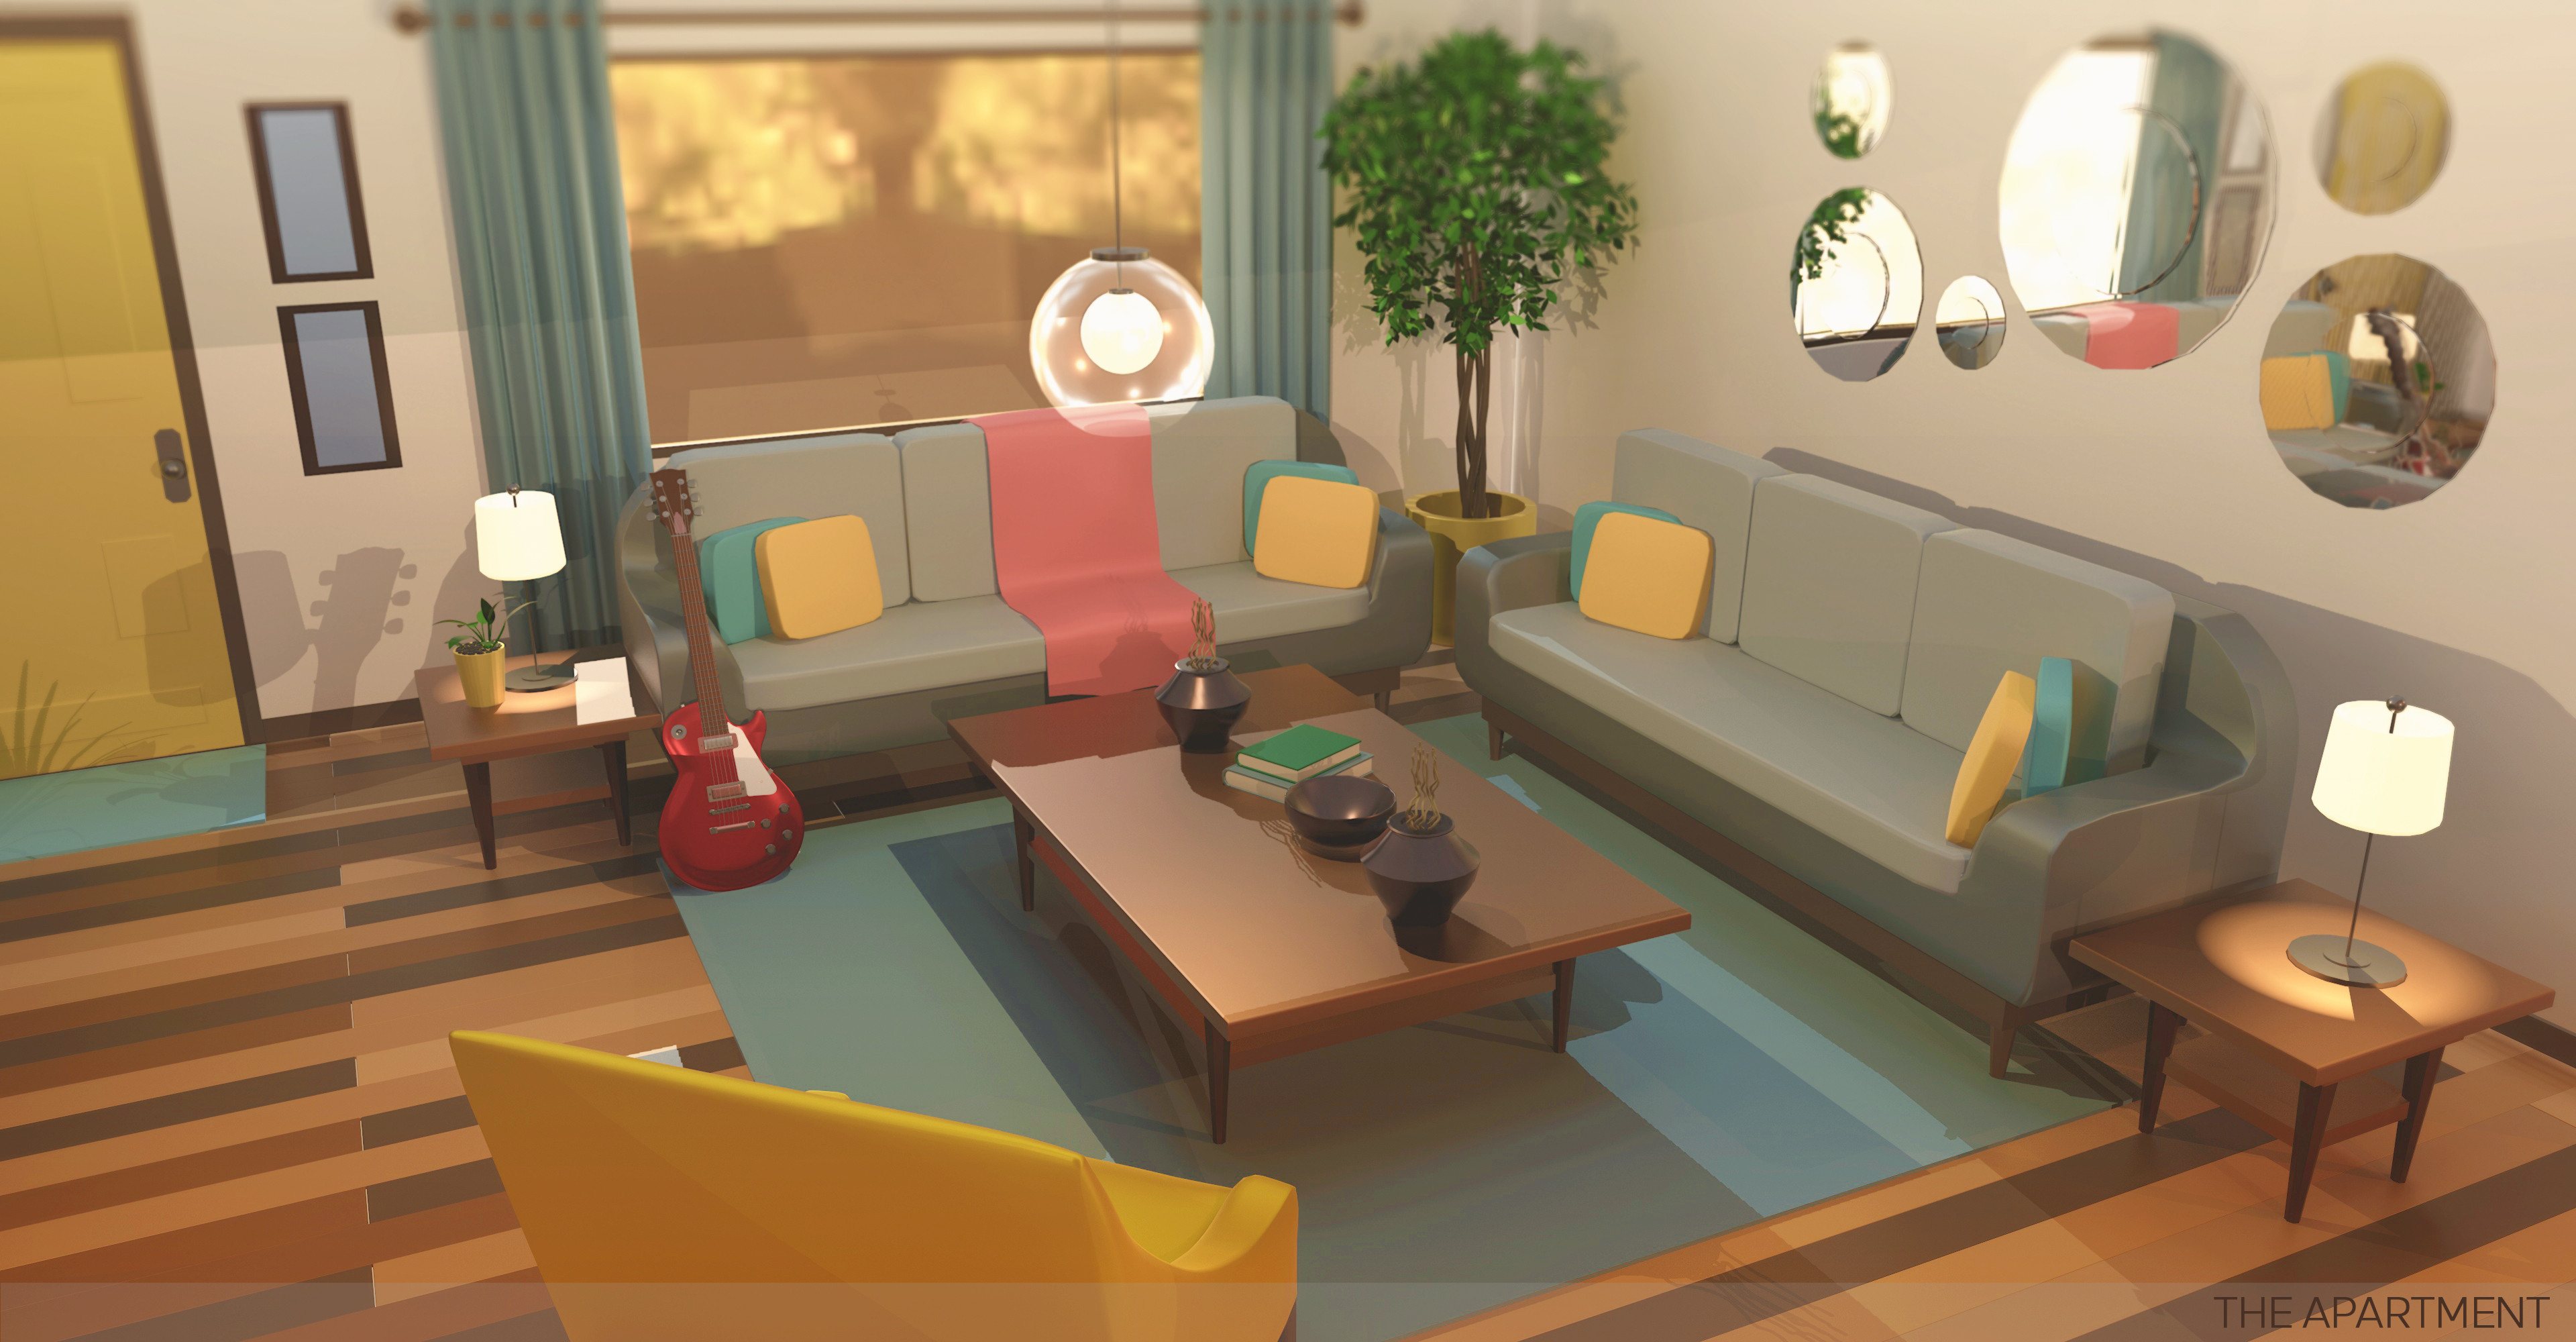 The_Apartment_Render_03